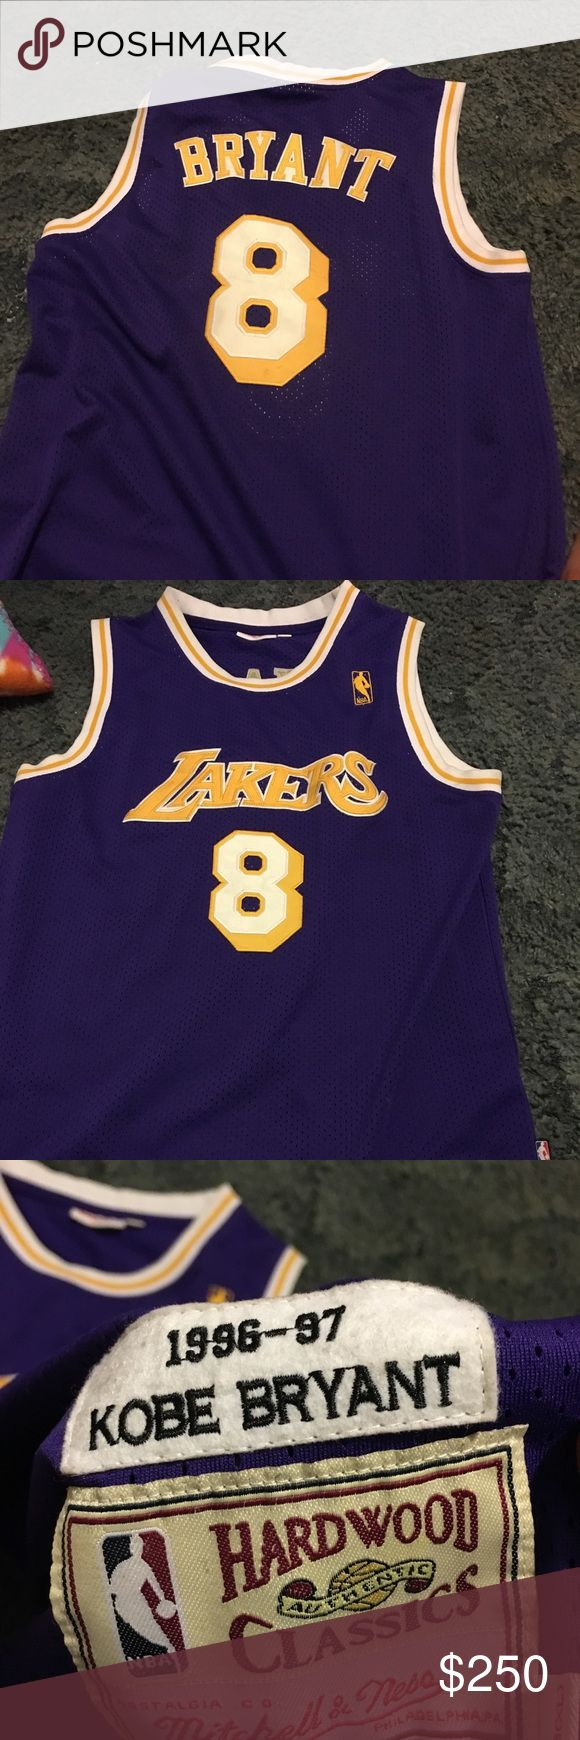 Kobe Bryant hardwood classic rookie year Great condition Other